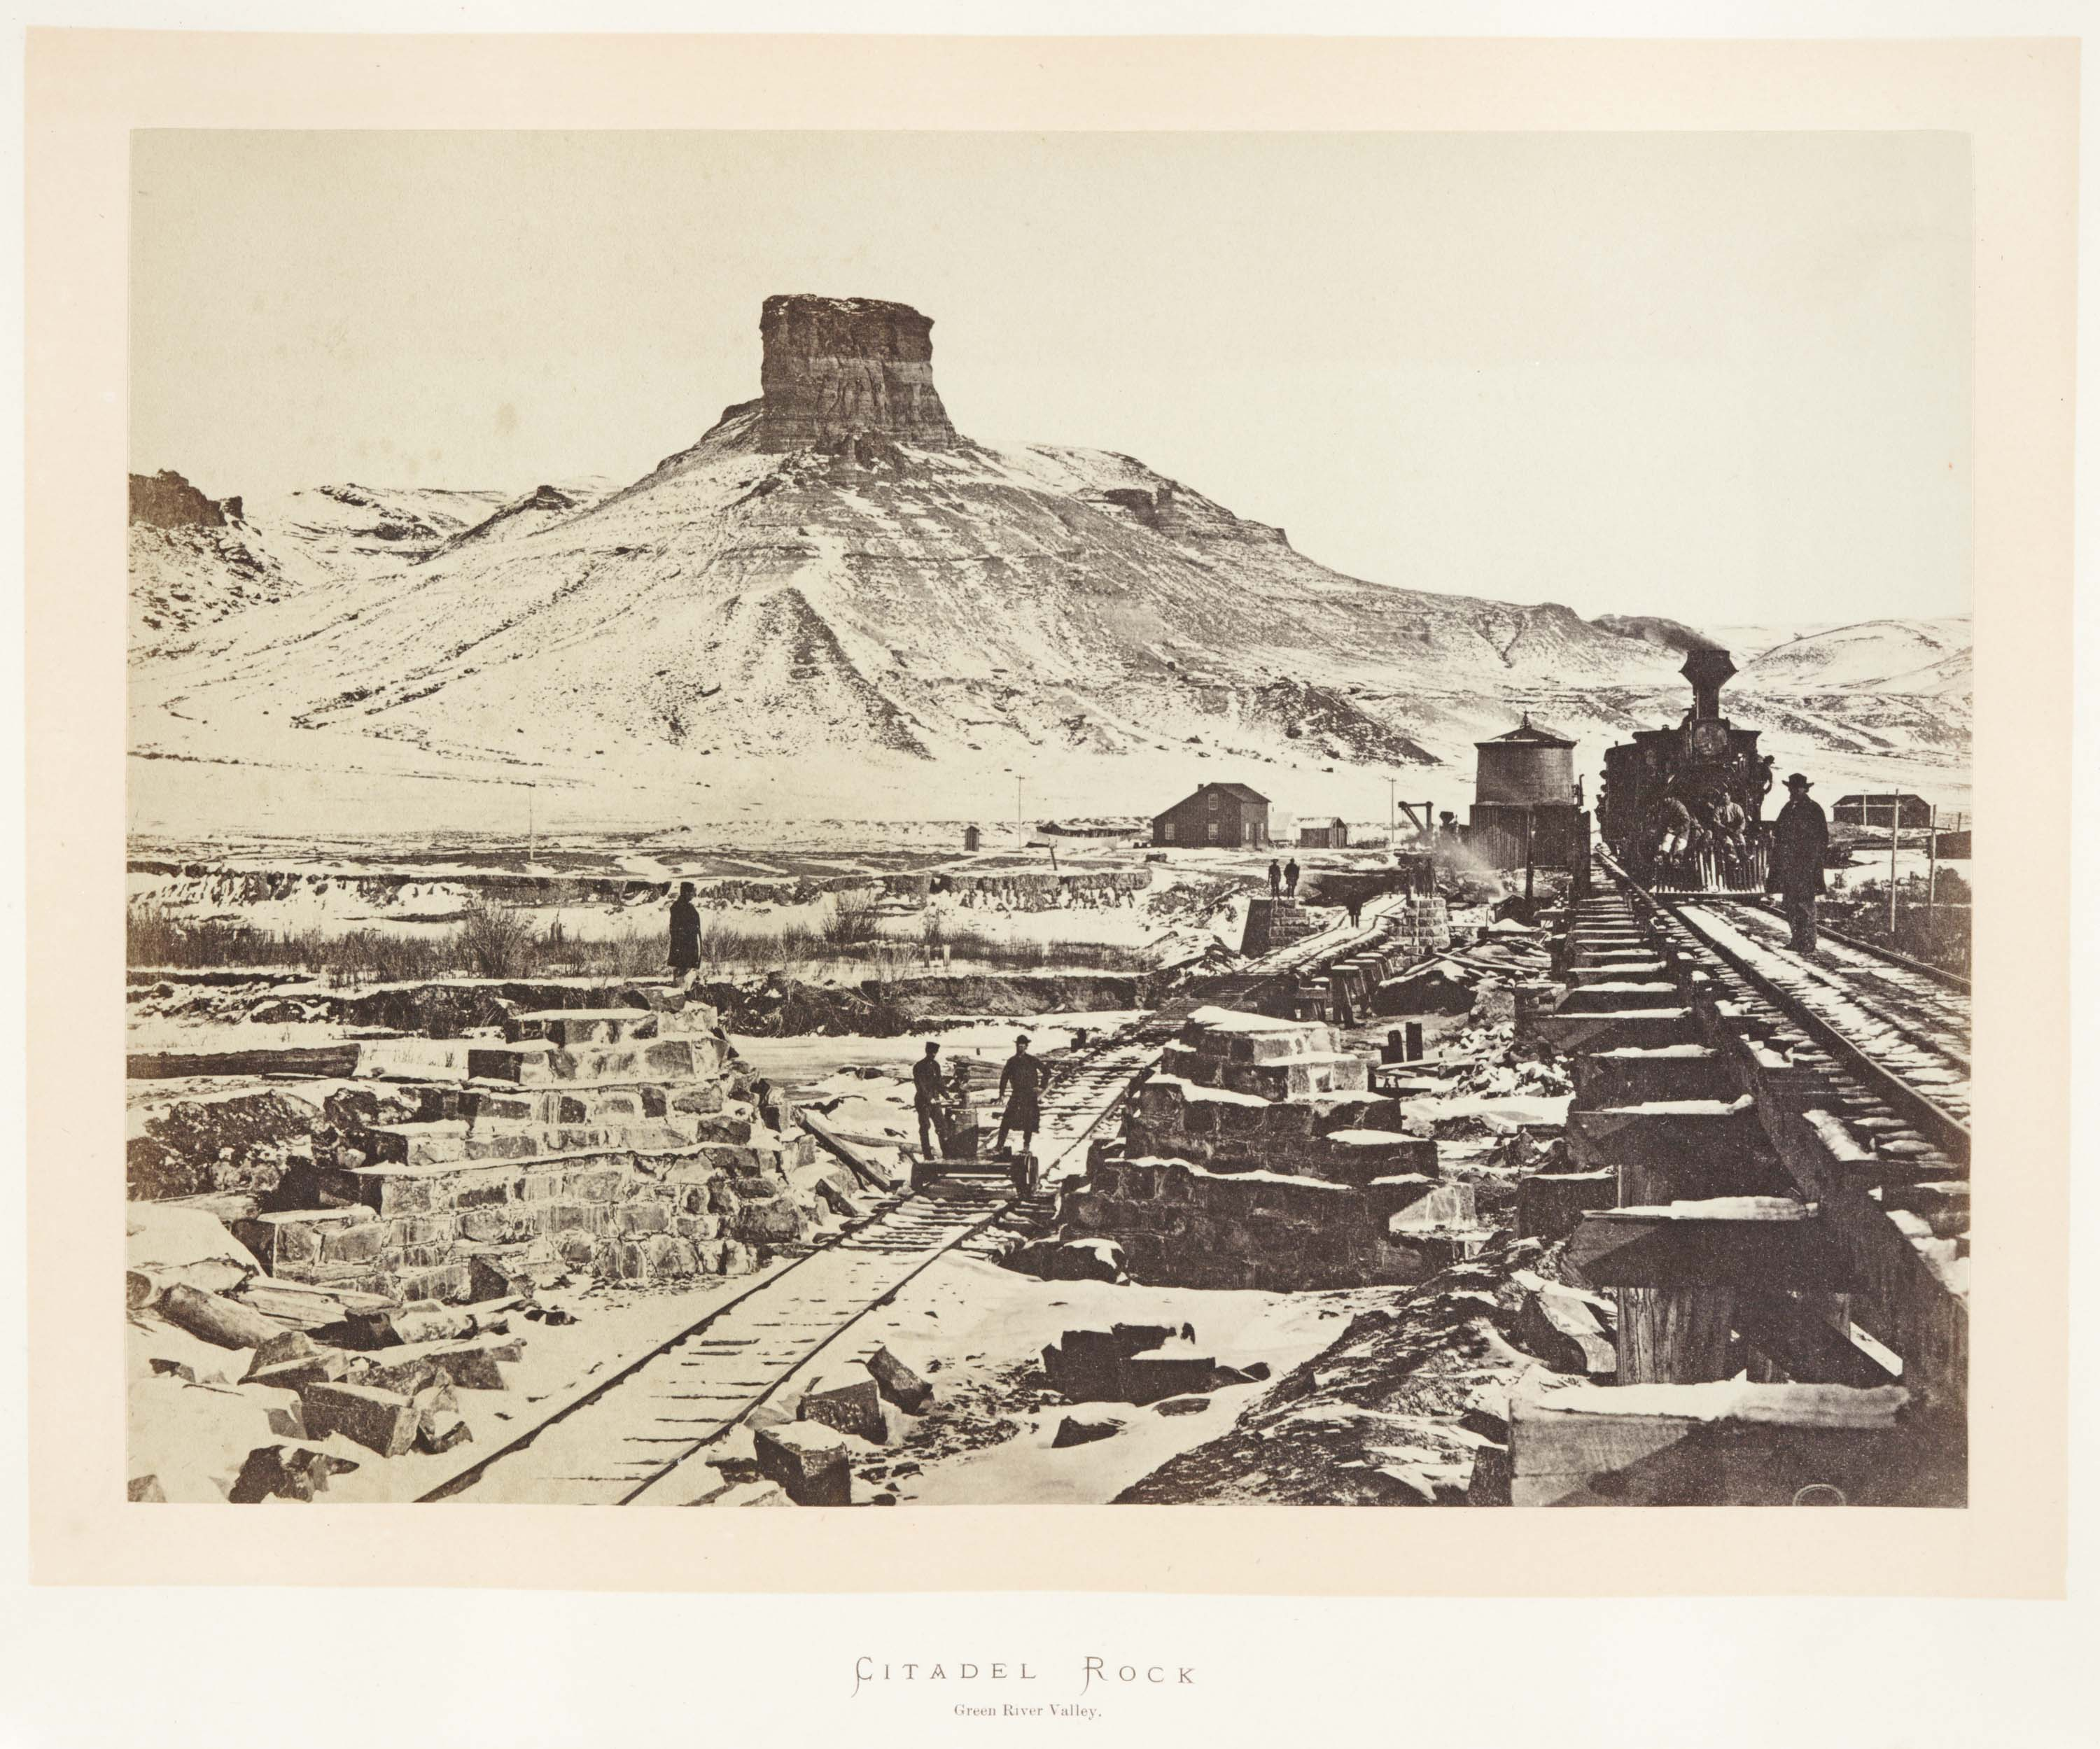 Andrew J. Russell, 'Citadel Rock,' 1868, from Sun pictures of Rocky Mountain Scenery by F. V. Hayden. Huntington Library, Art Collections, and Botanical Gardens.